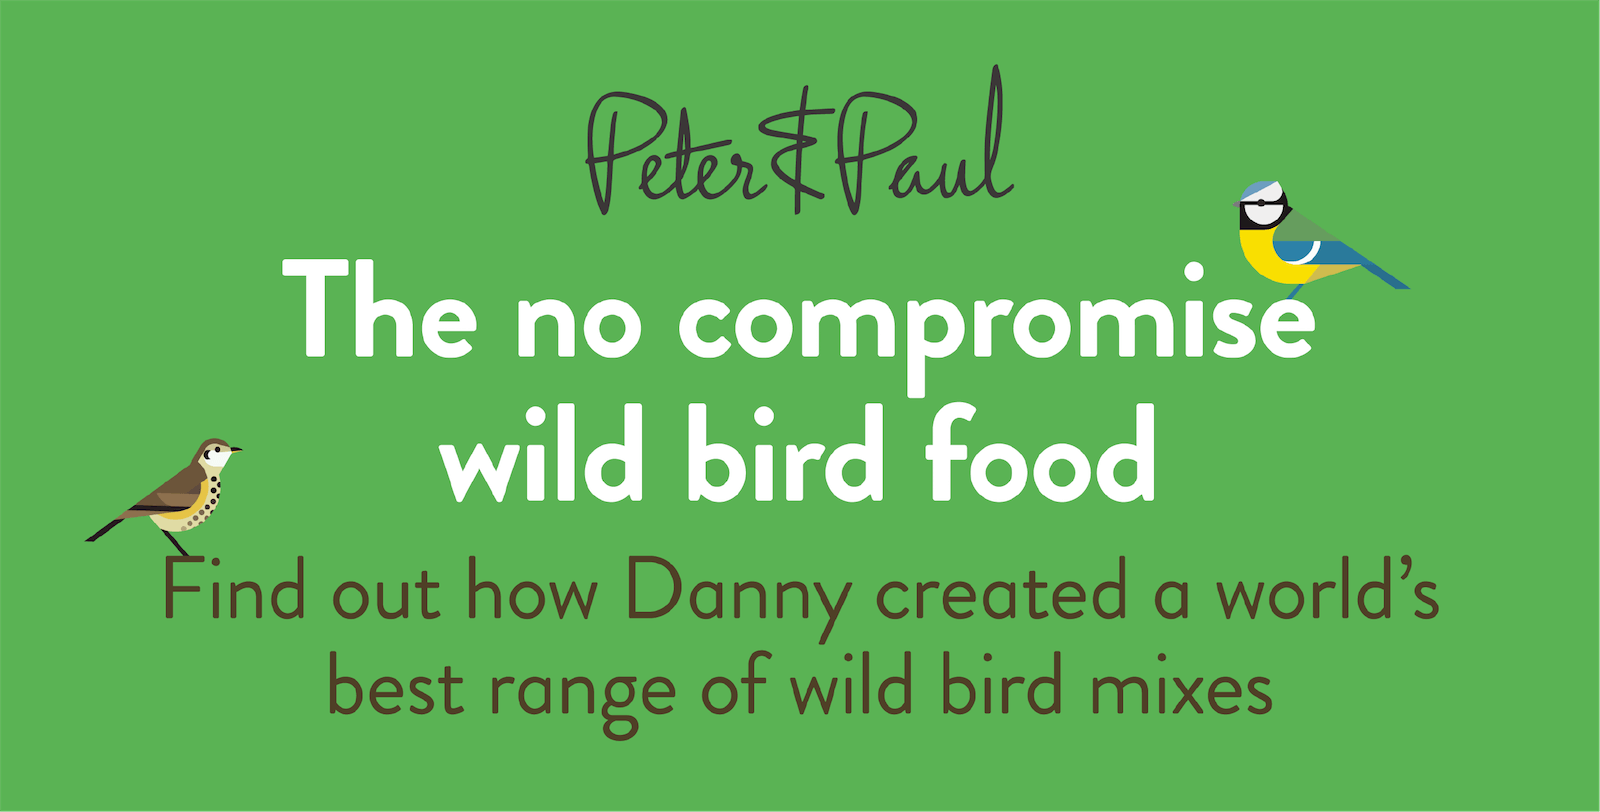 Peter & Paul. The no ompromise wild bird food. Find out how Danny created a world's best range of wild bird mixes